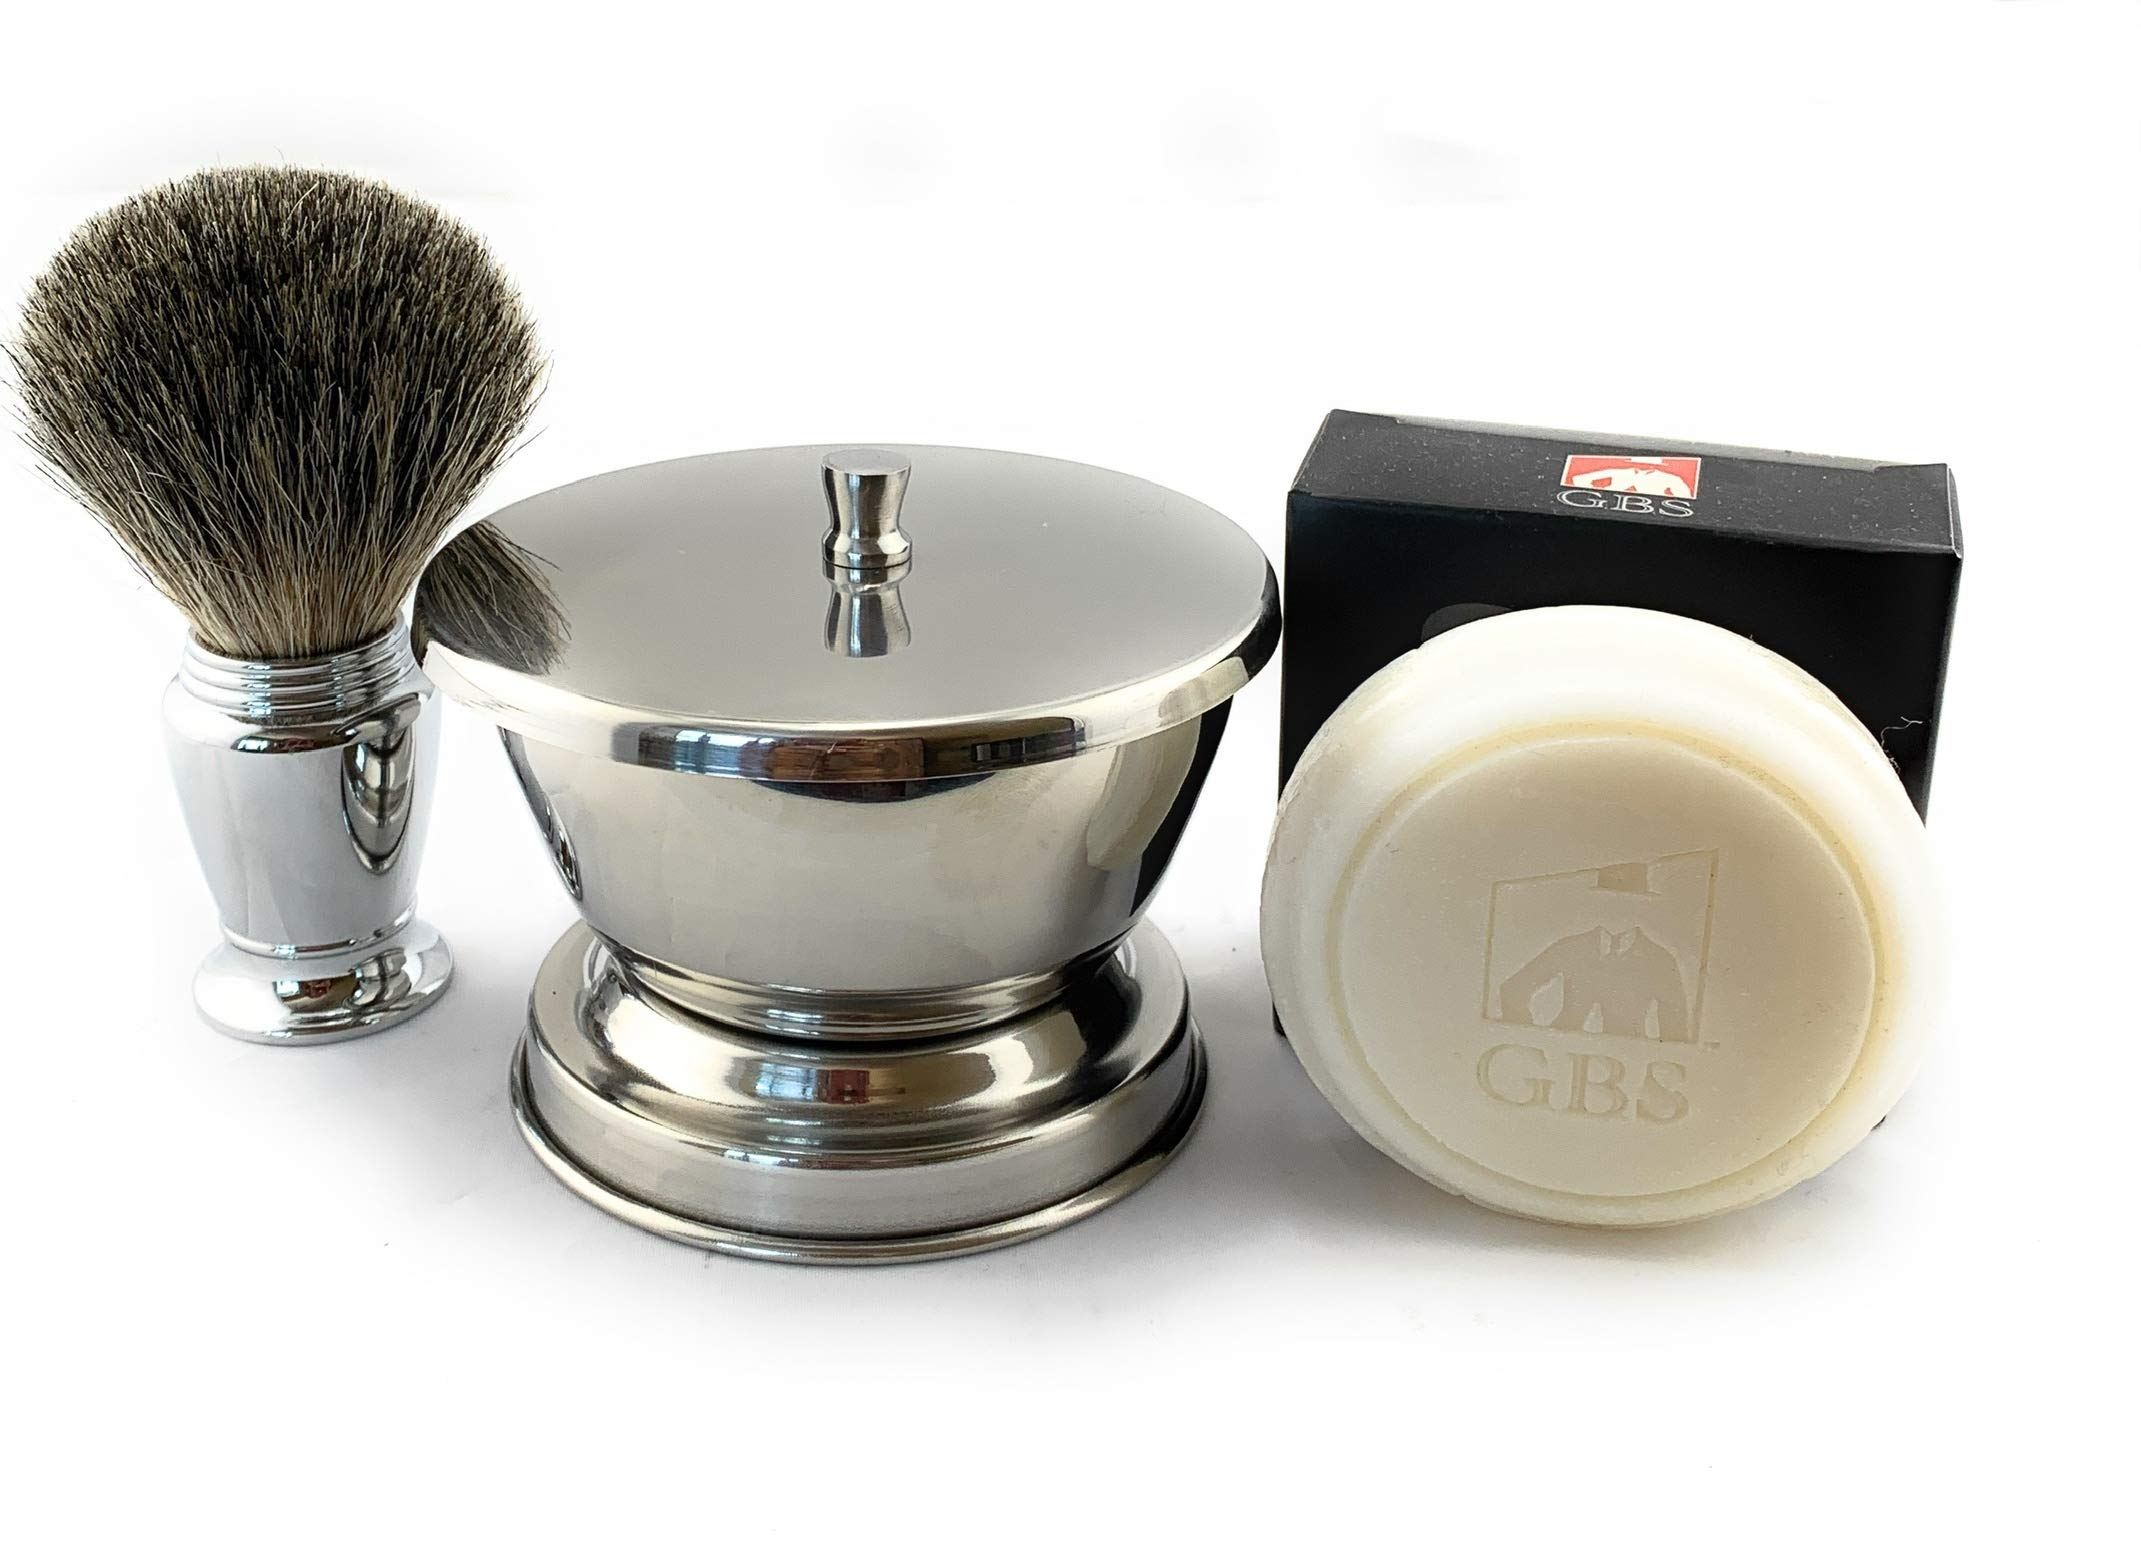 GBS Men's Wet Shaving Set - Chrome Pure Badger Shave Brush, Stainless Soap Bowl, Driftwood Natural Shave Soap Compliments Any Shaving Razor & Barber Tools. Wide Cup Produces Rich Lather (With Lid)